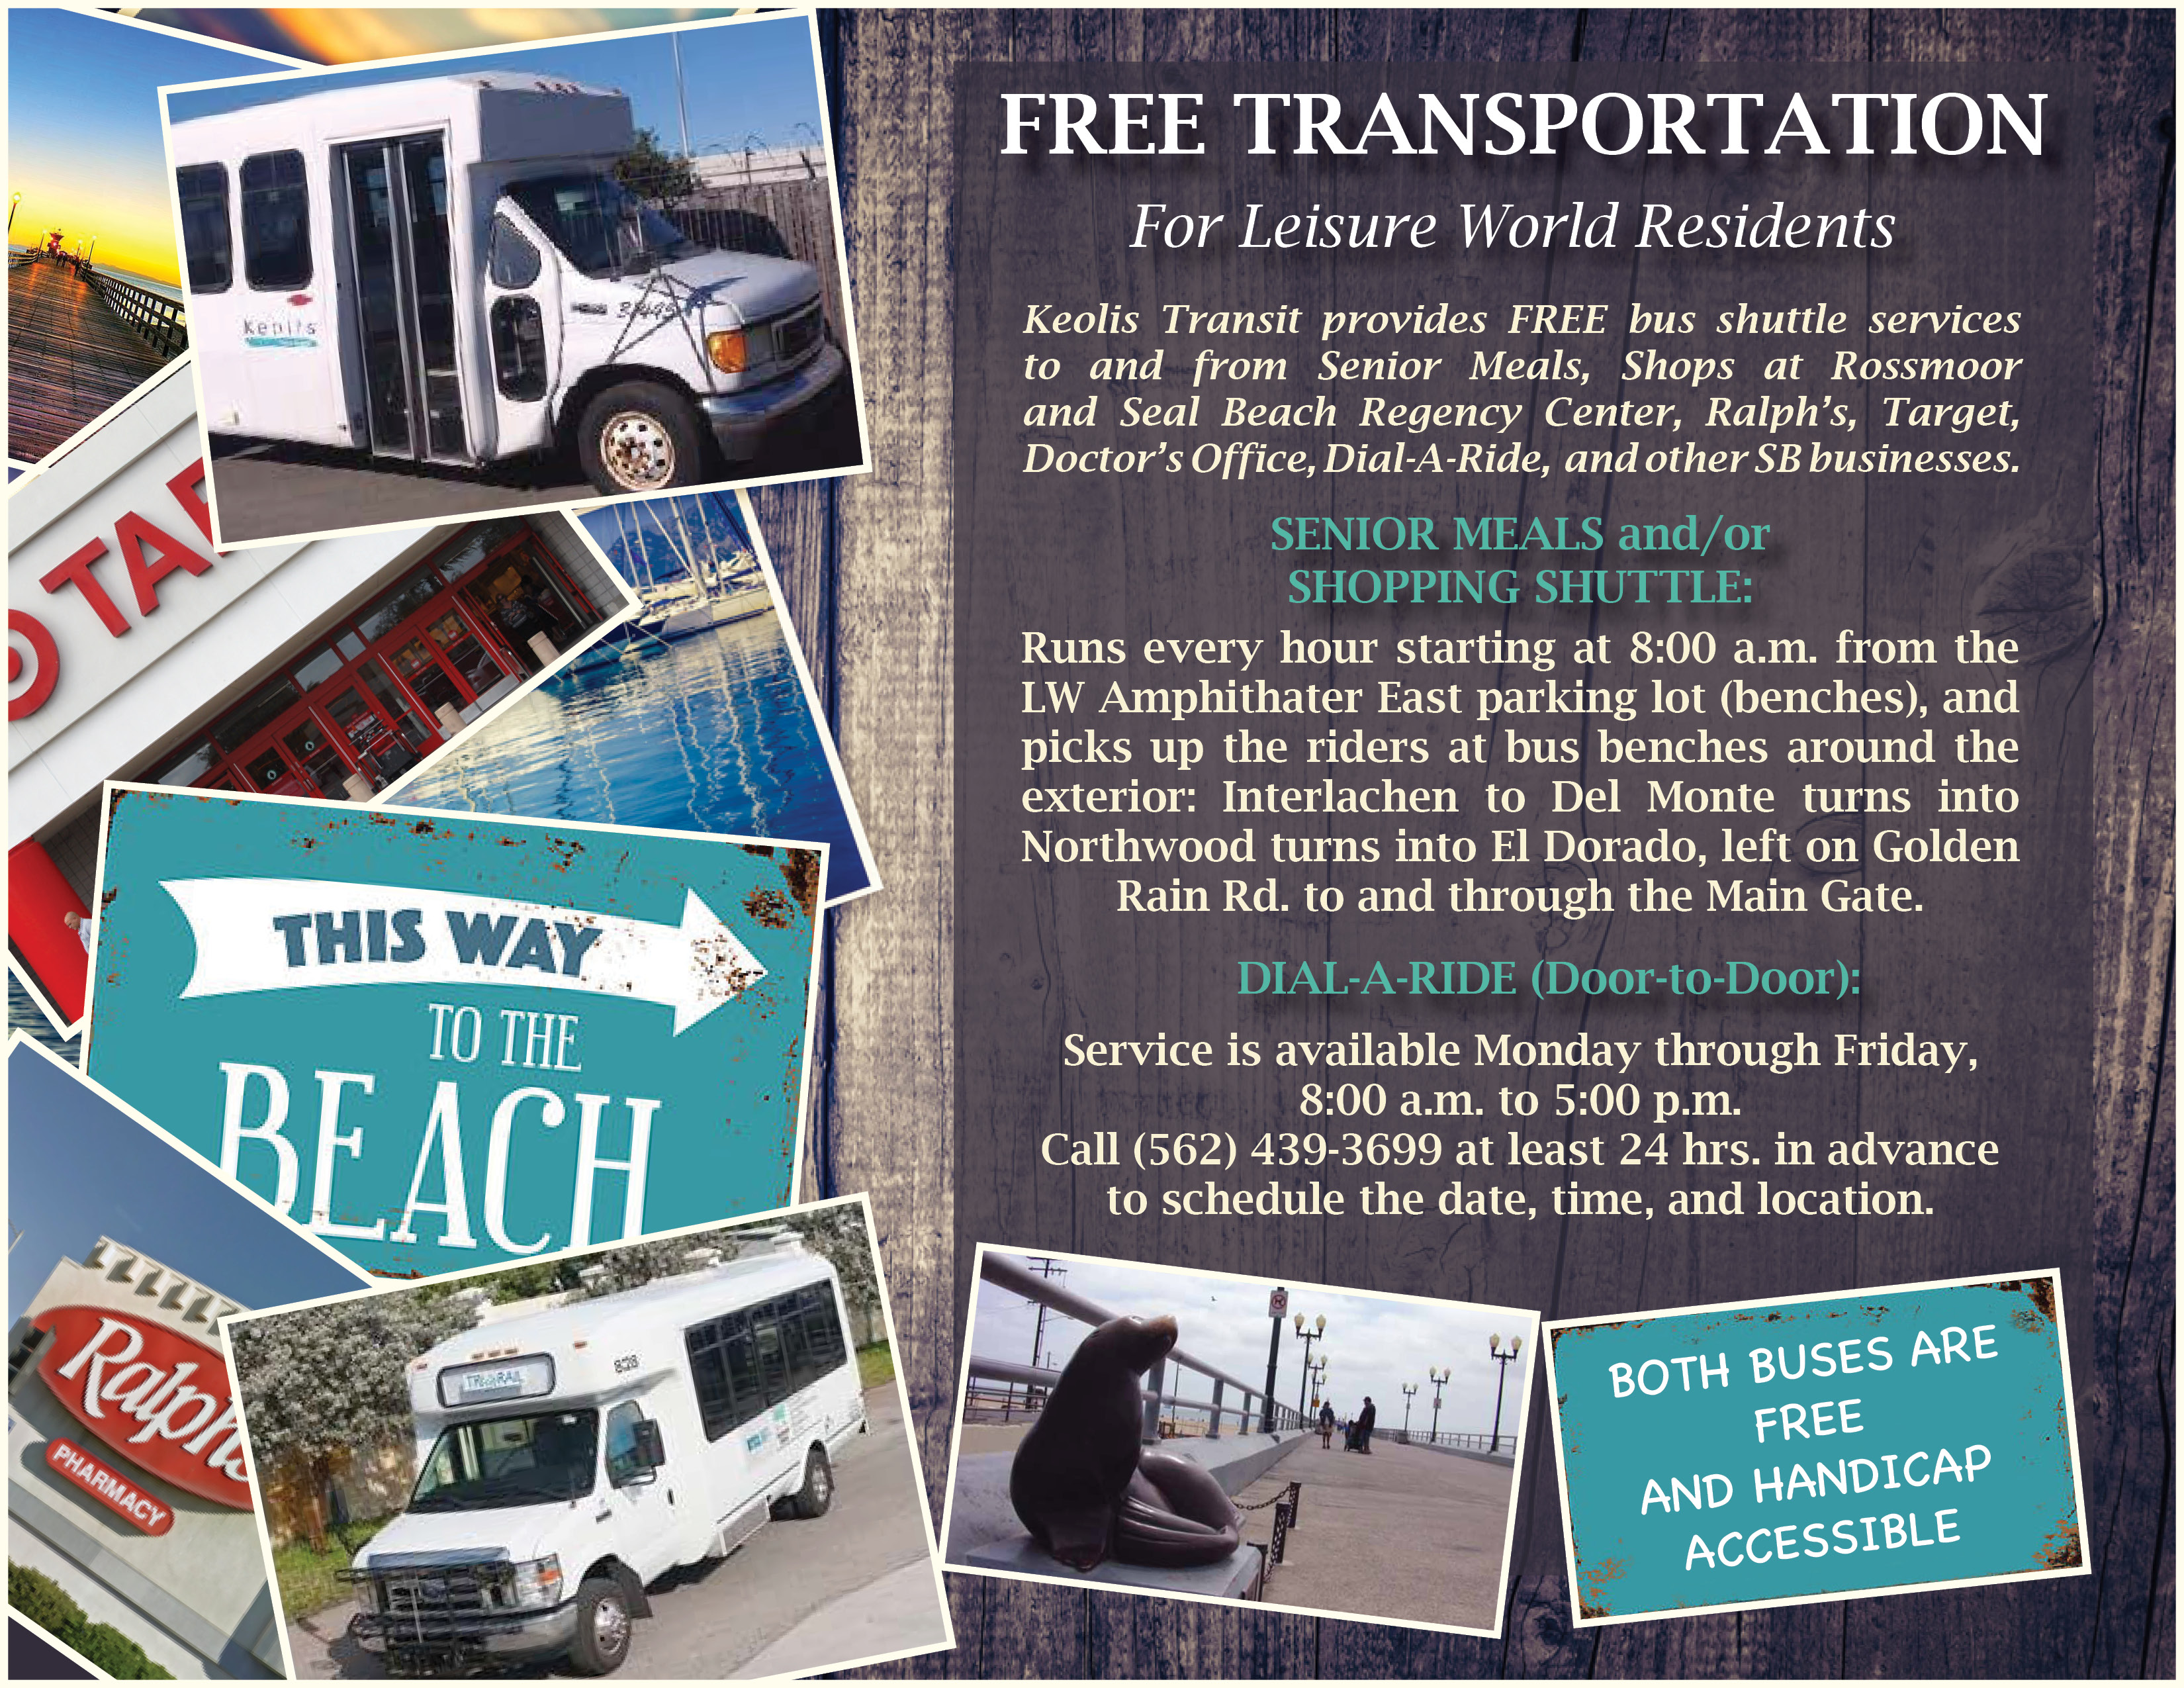 Free buses